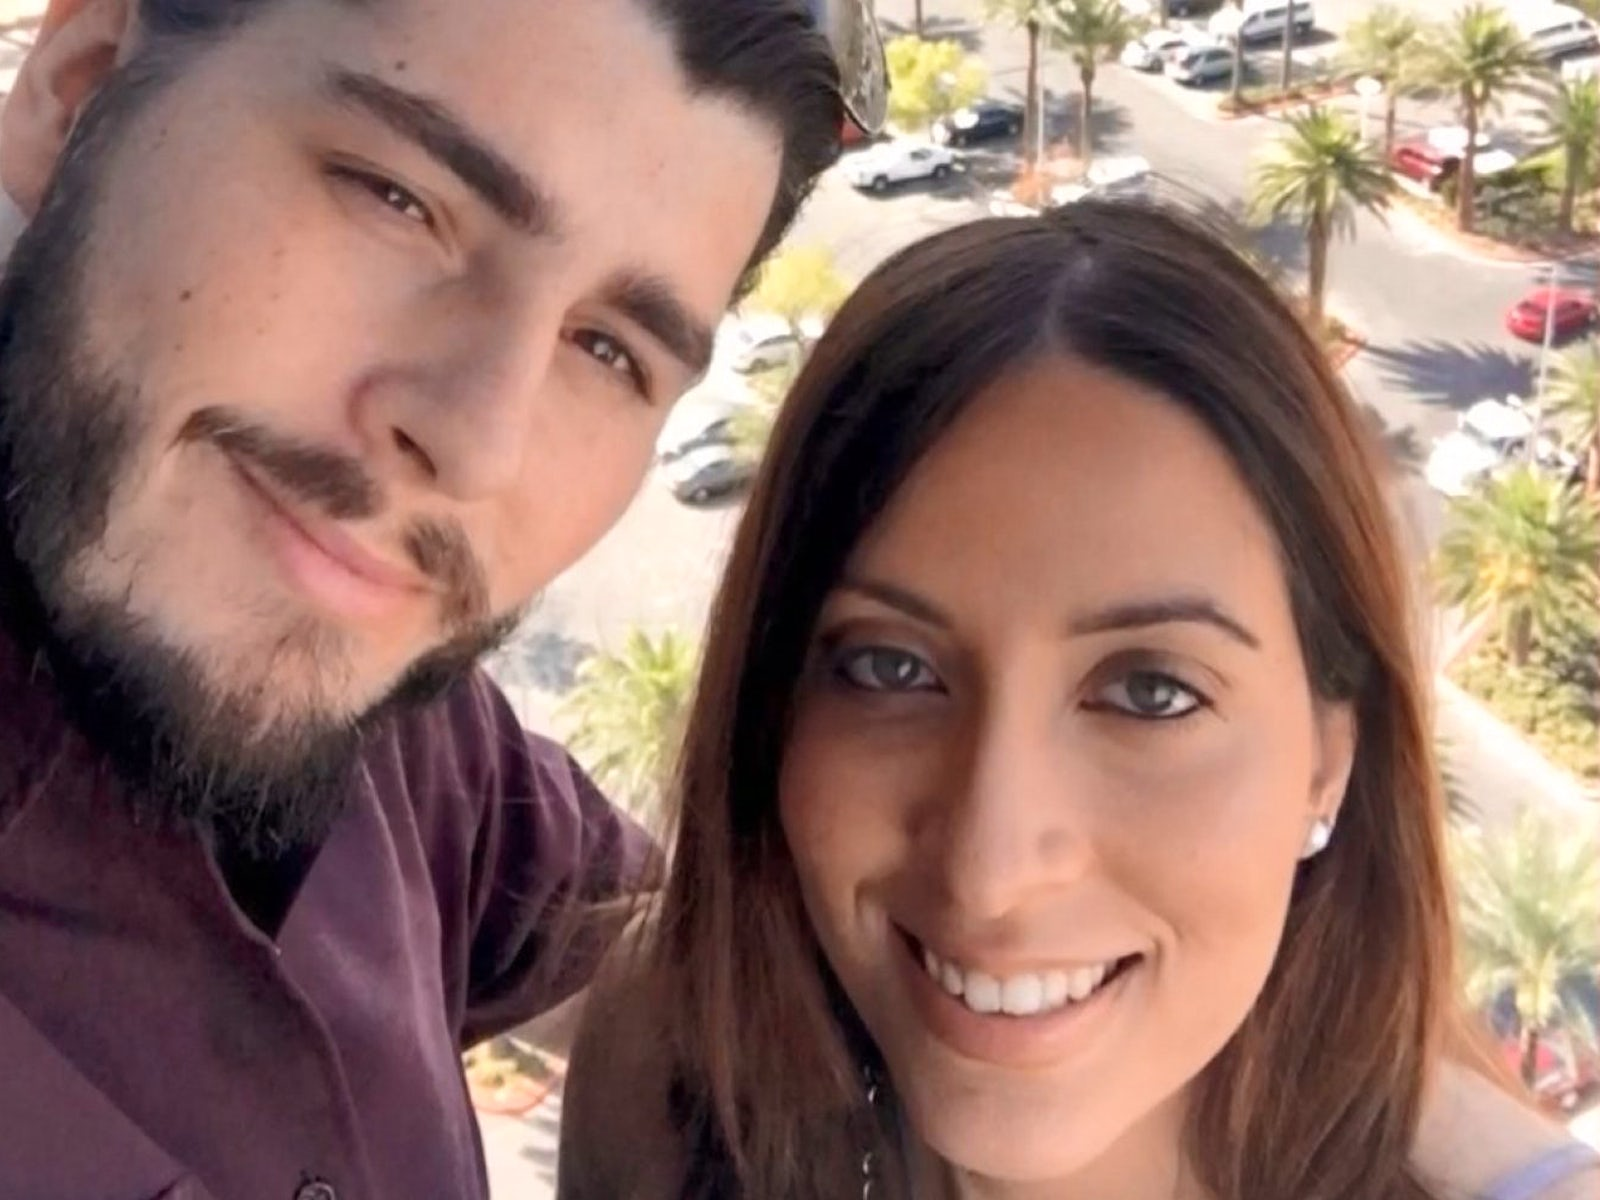 '90 Day Fiance' spoilers: Are Amira Lollysa and Andrew Kenton still together? Did the '90 Day Fiance' couple break up? (SPOILERS)